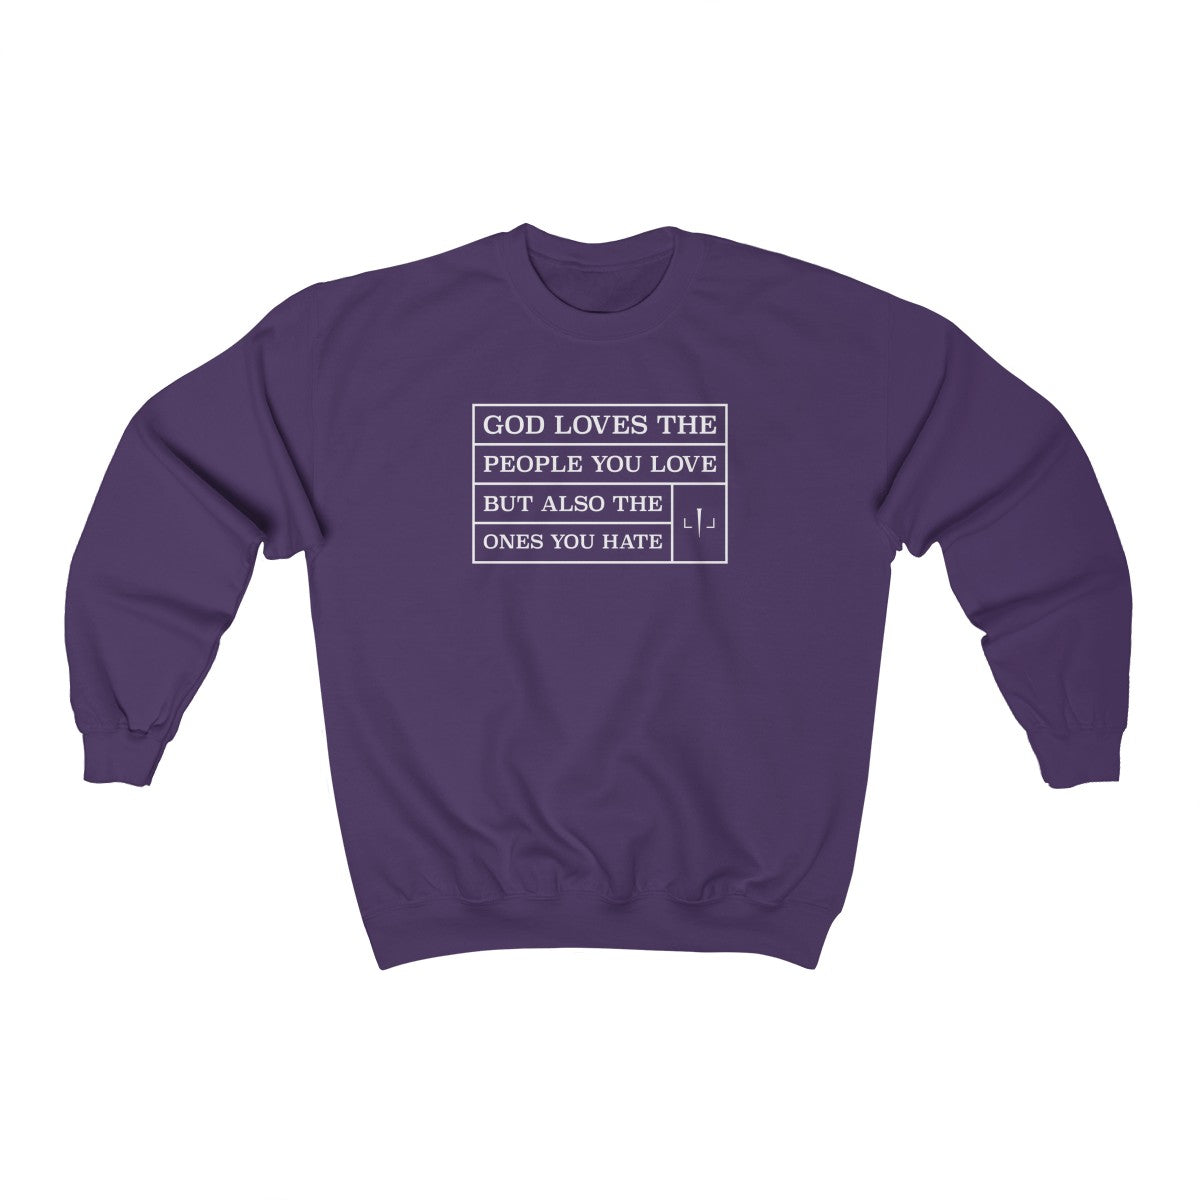 God Loves The People You Love But Also The Ones You Hate Unisex Heavy Blend™ Crewneck Sweatshirt